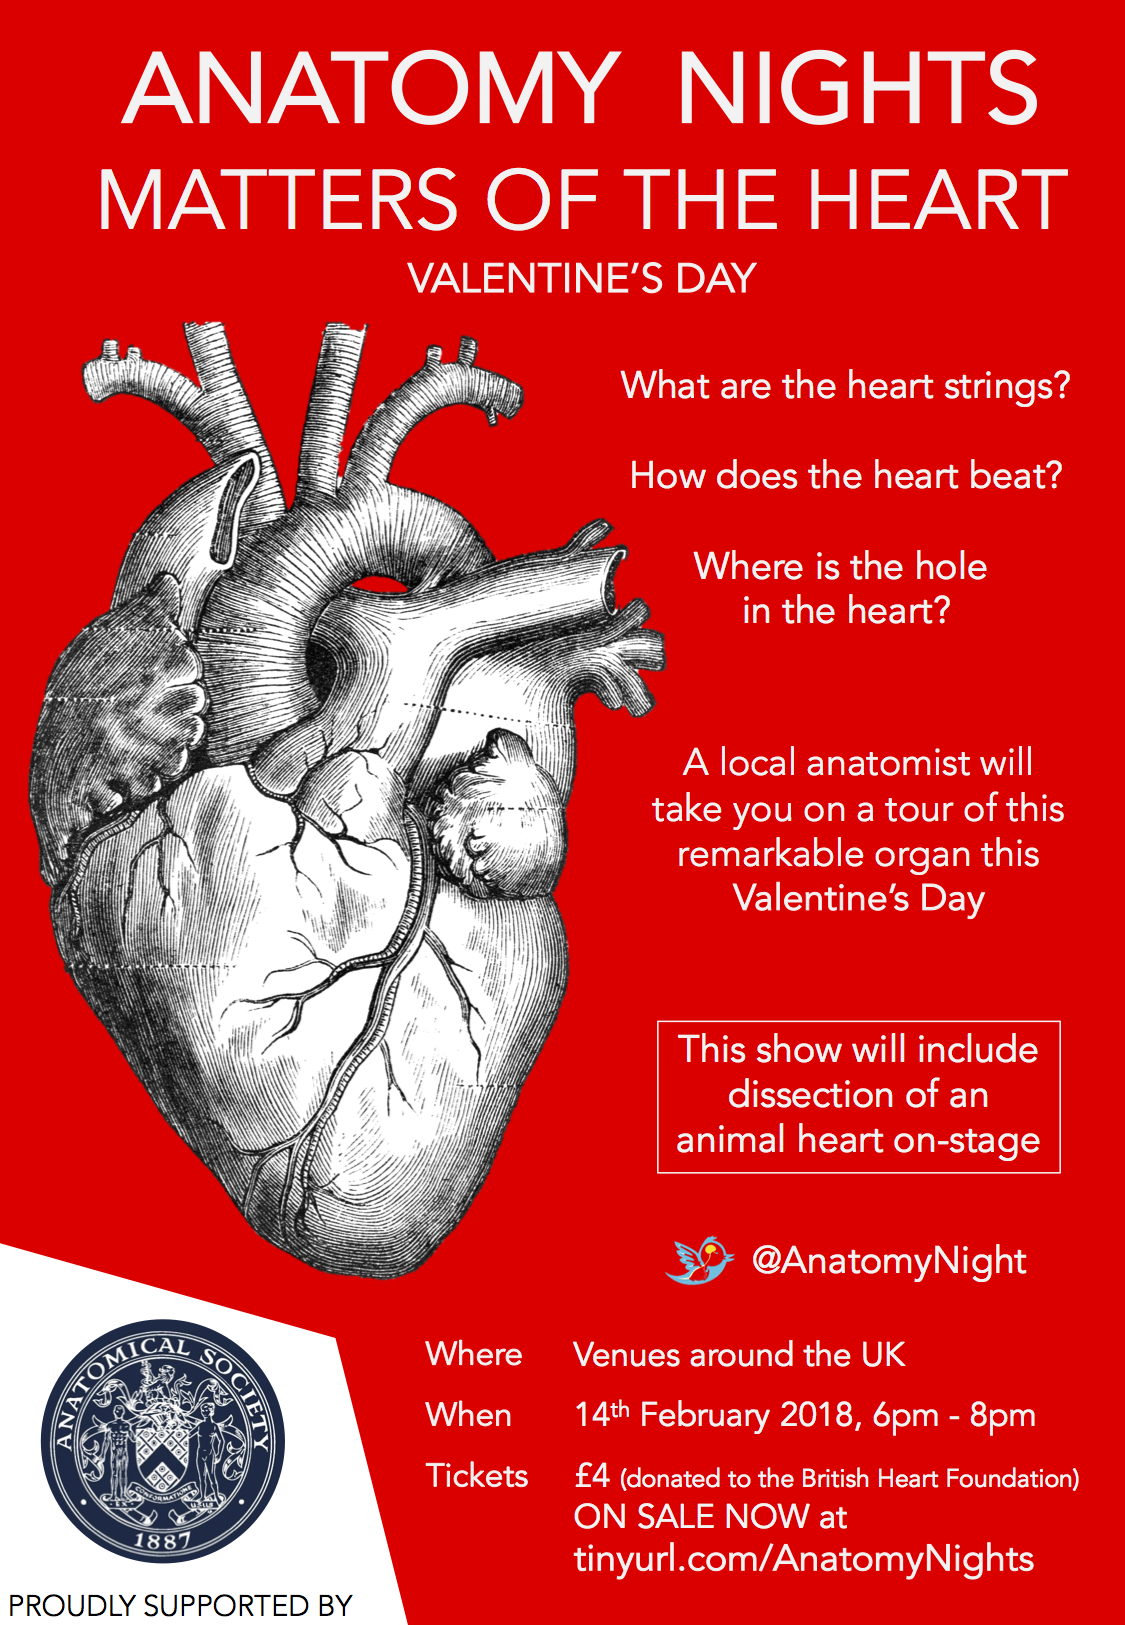 Anatomy Nights